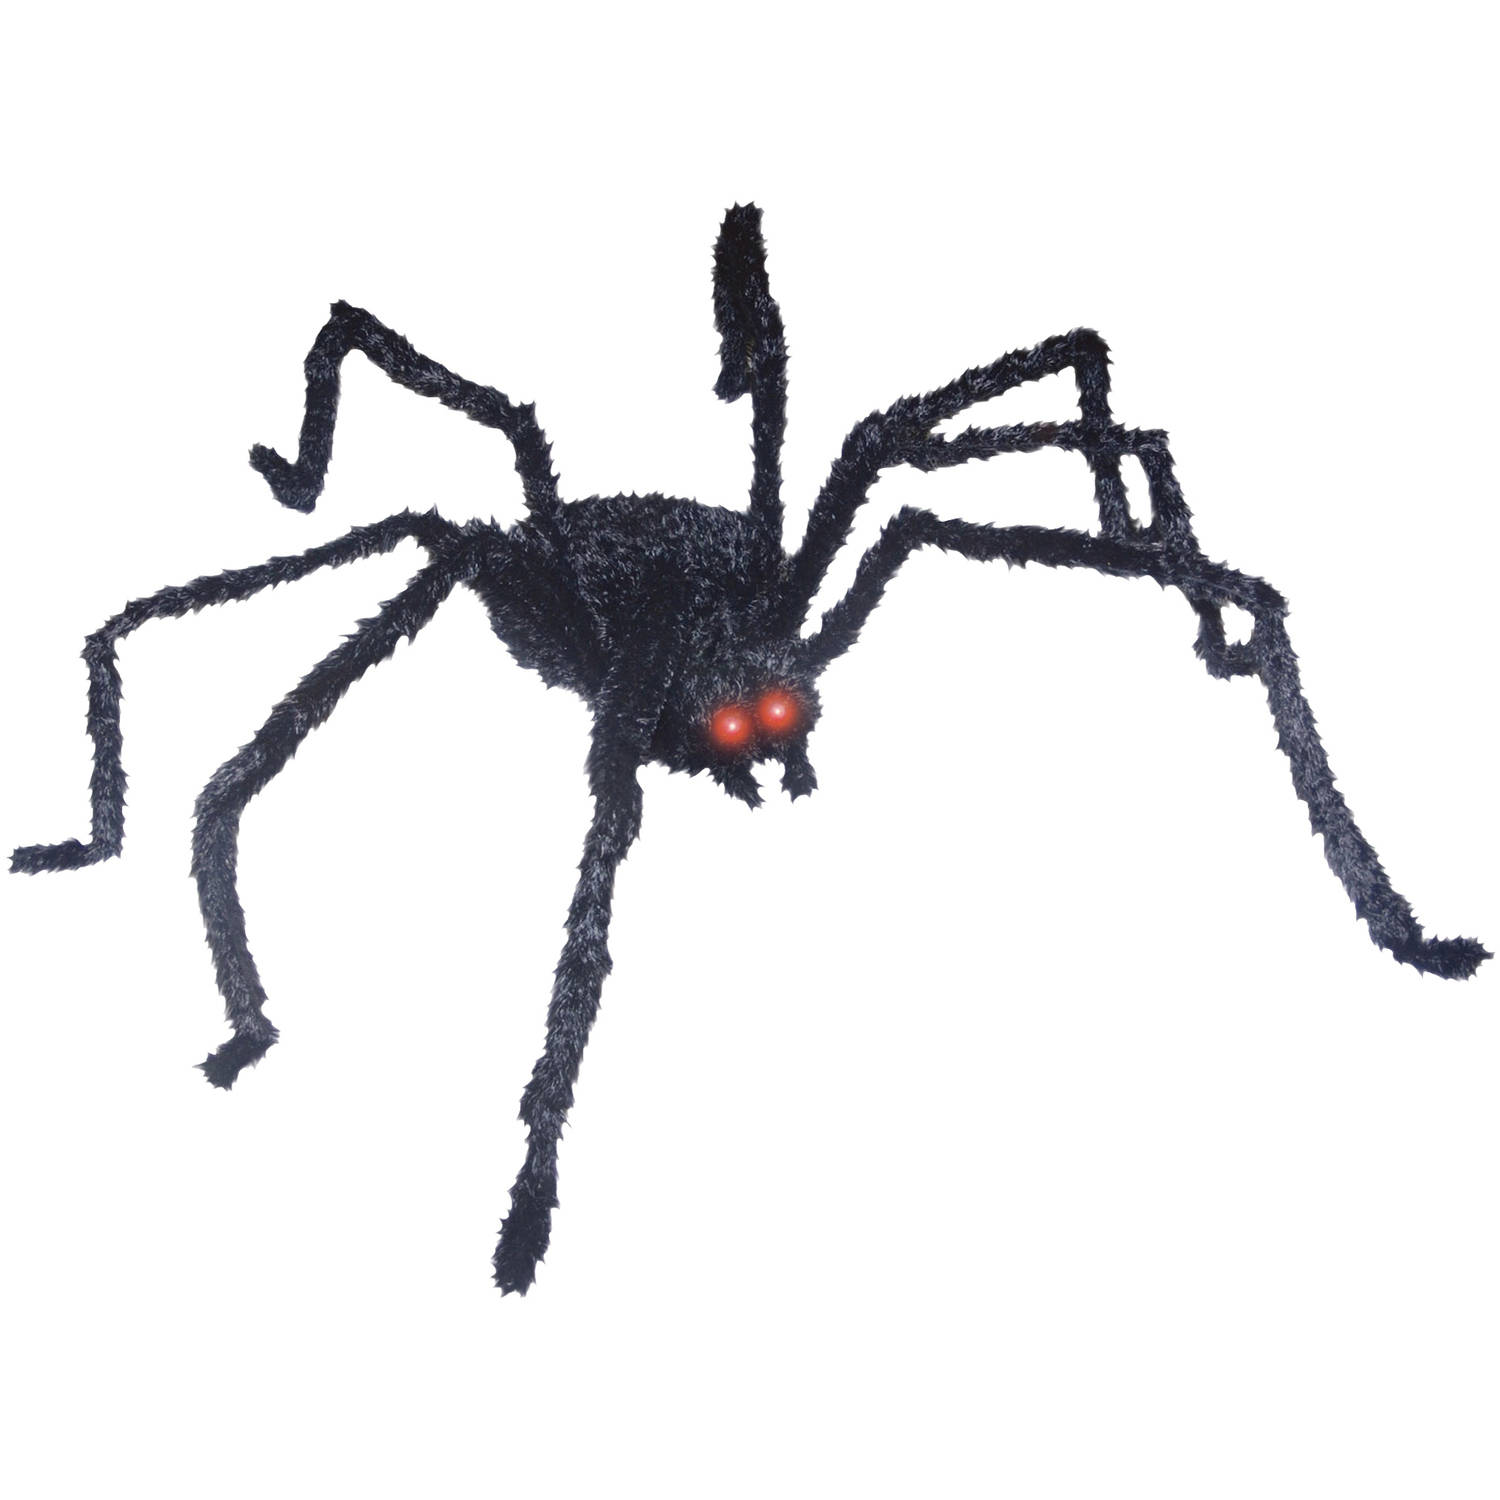 spider animated images clipart best